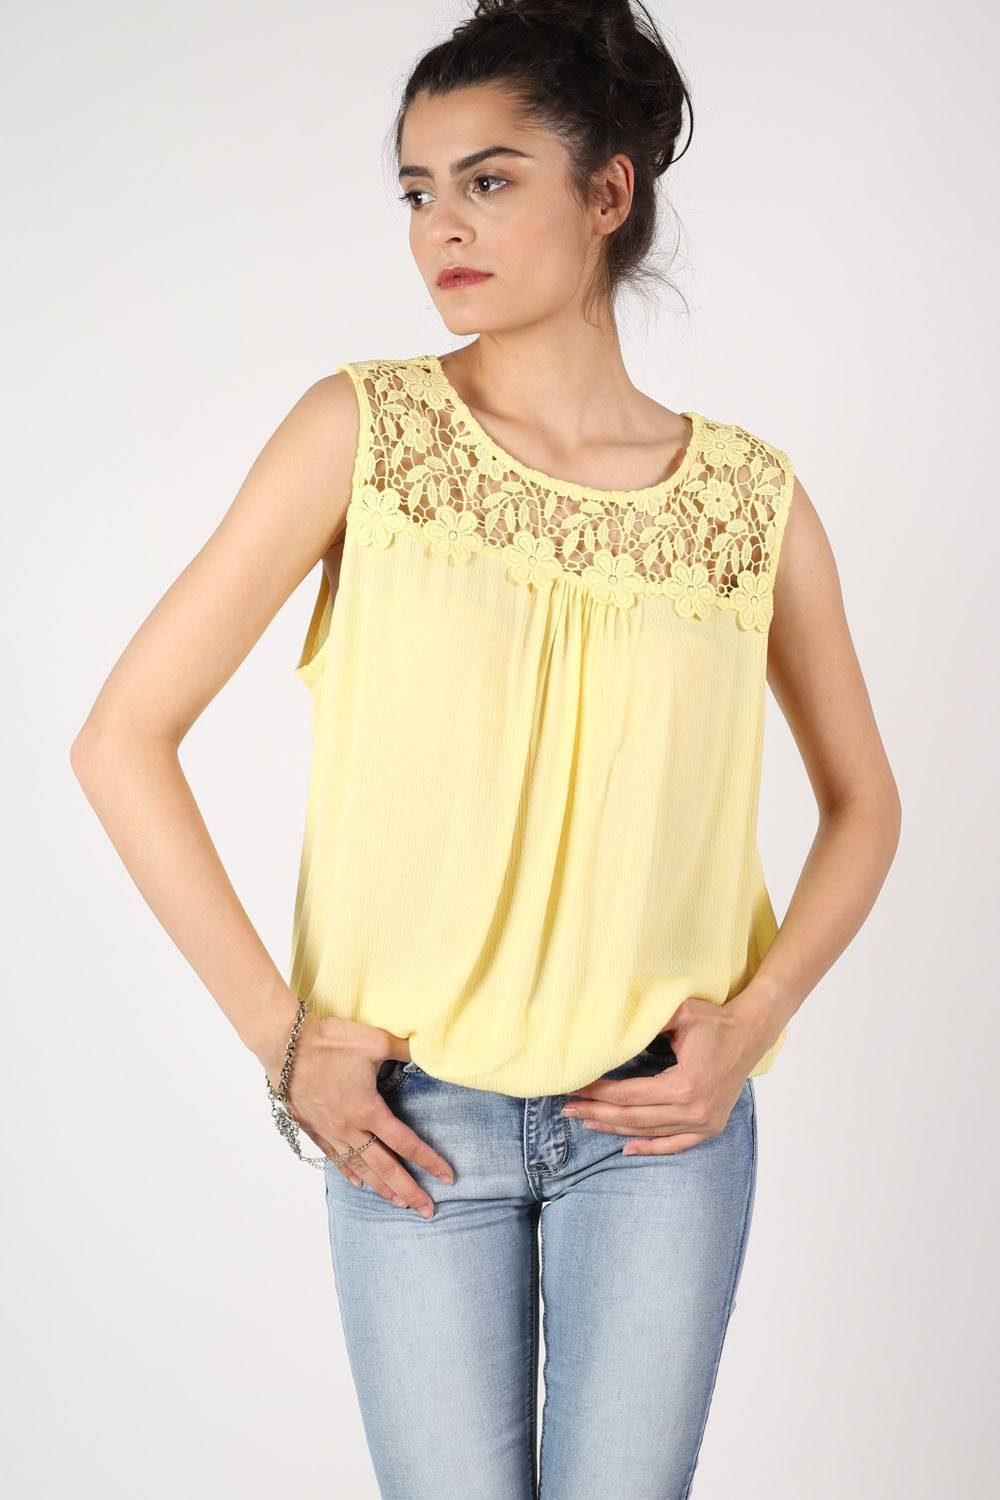 Crochet Trim Sleeveless Top in Yellow 0